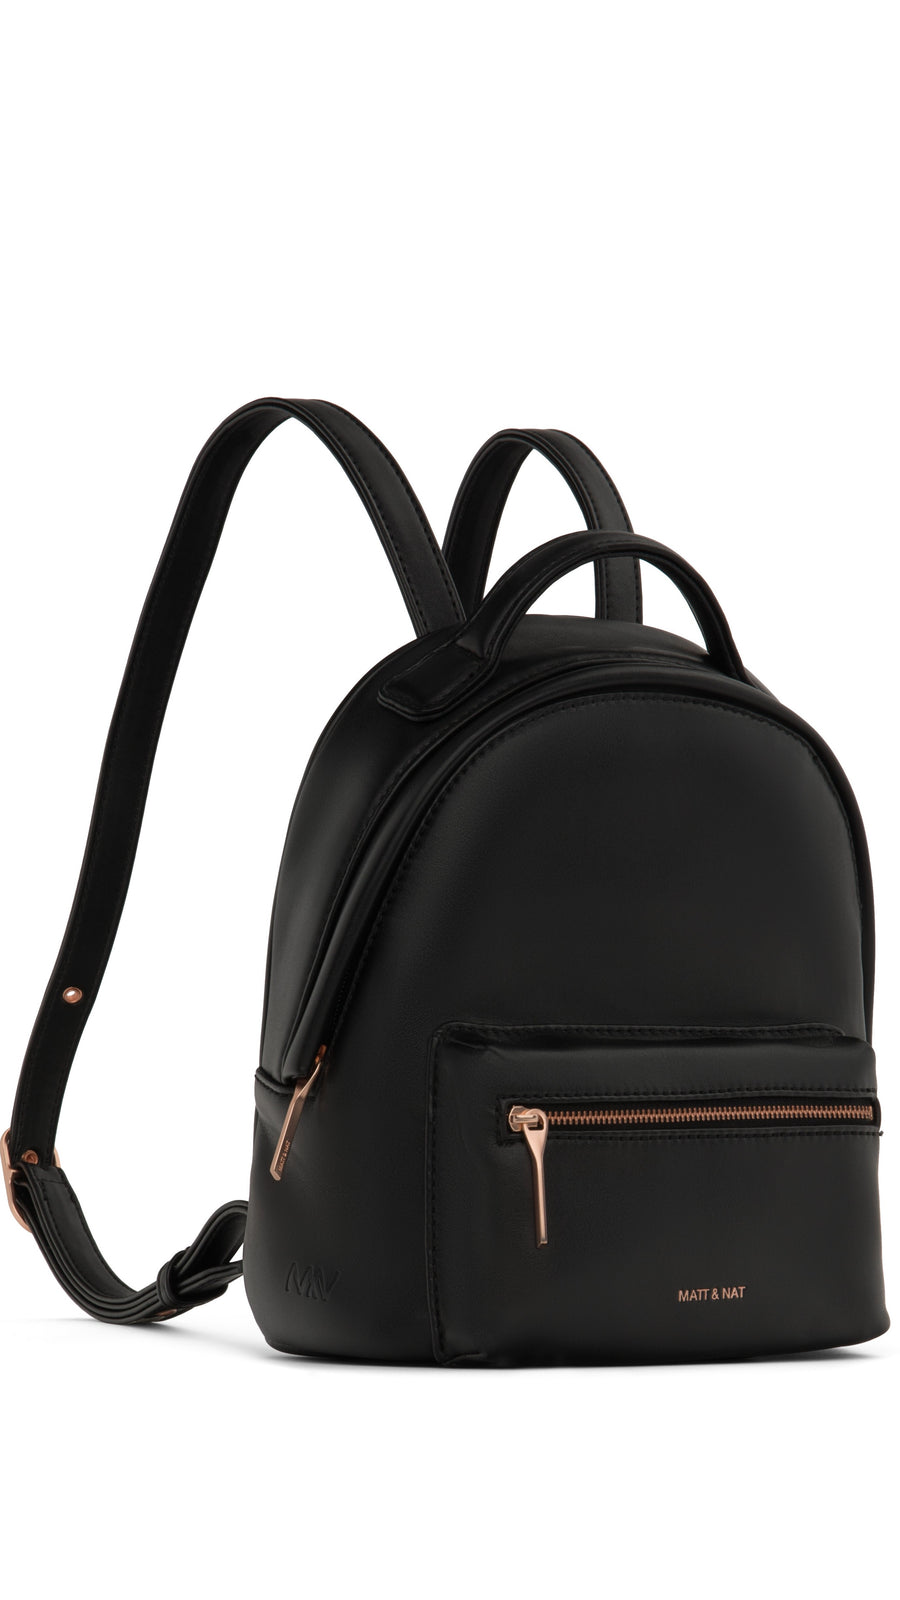 Matt & Nat Black BALIMINI Backpack